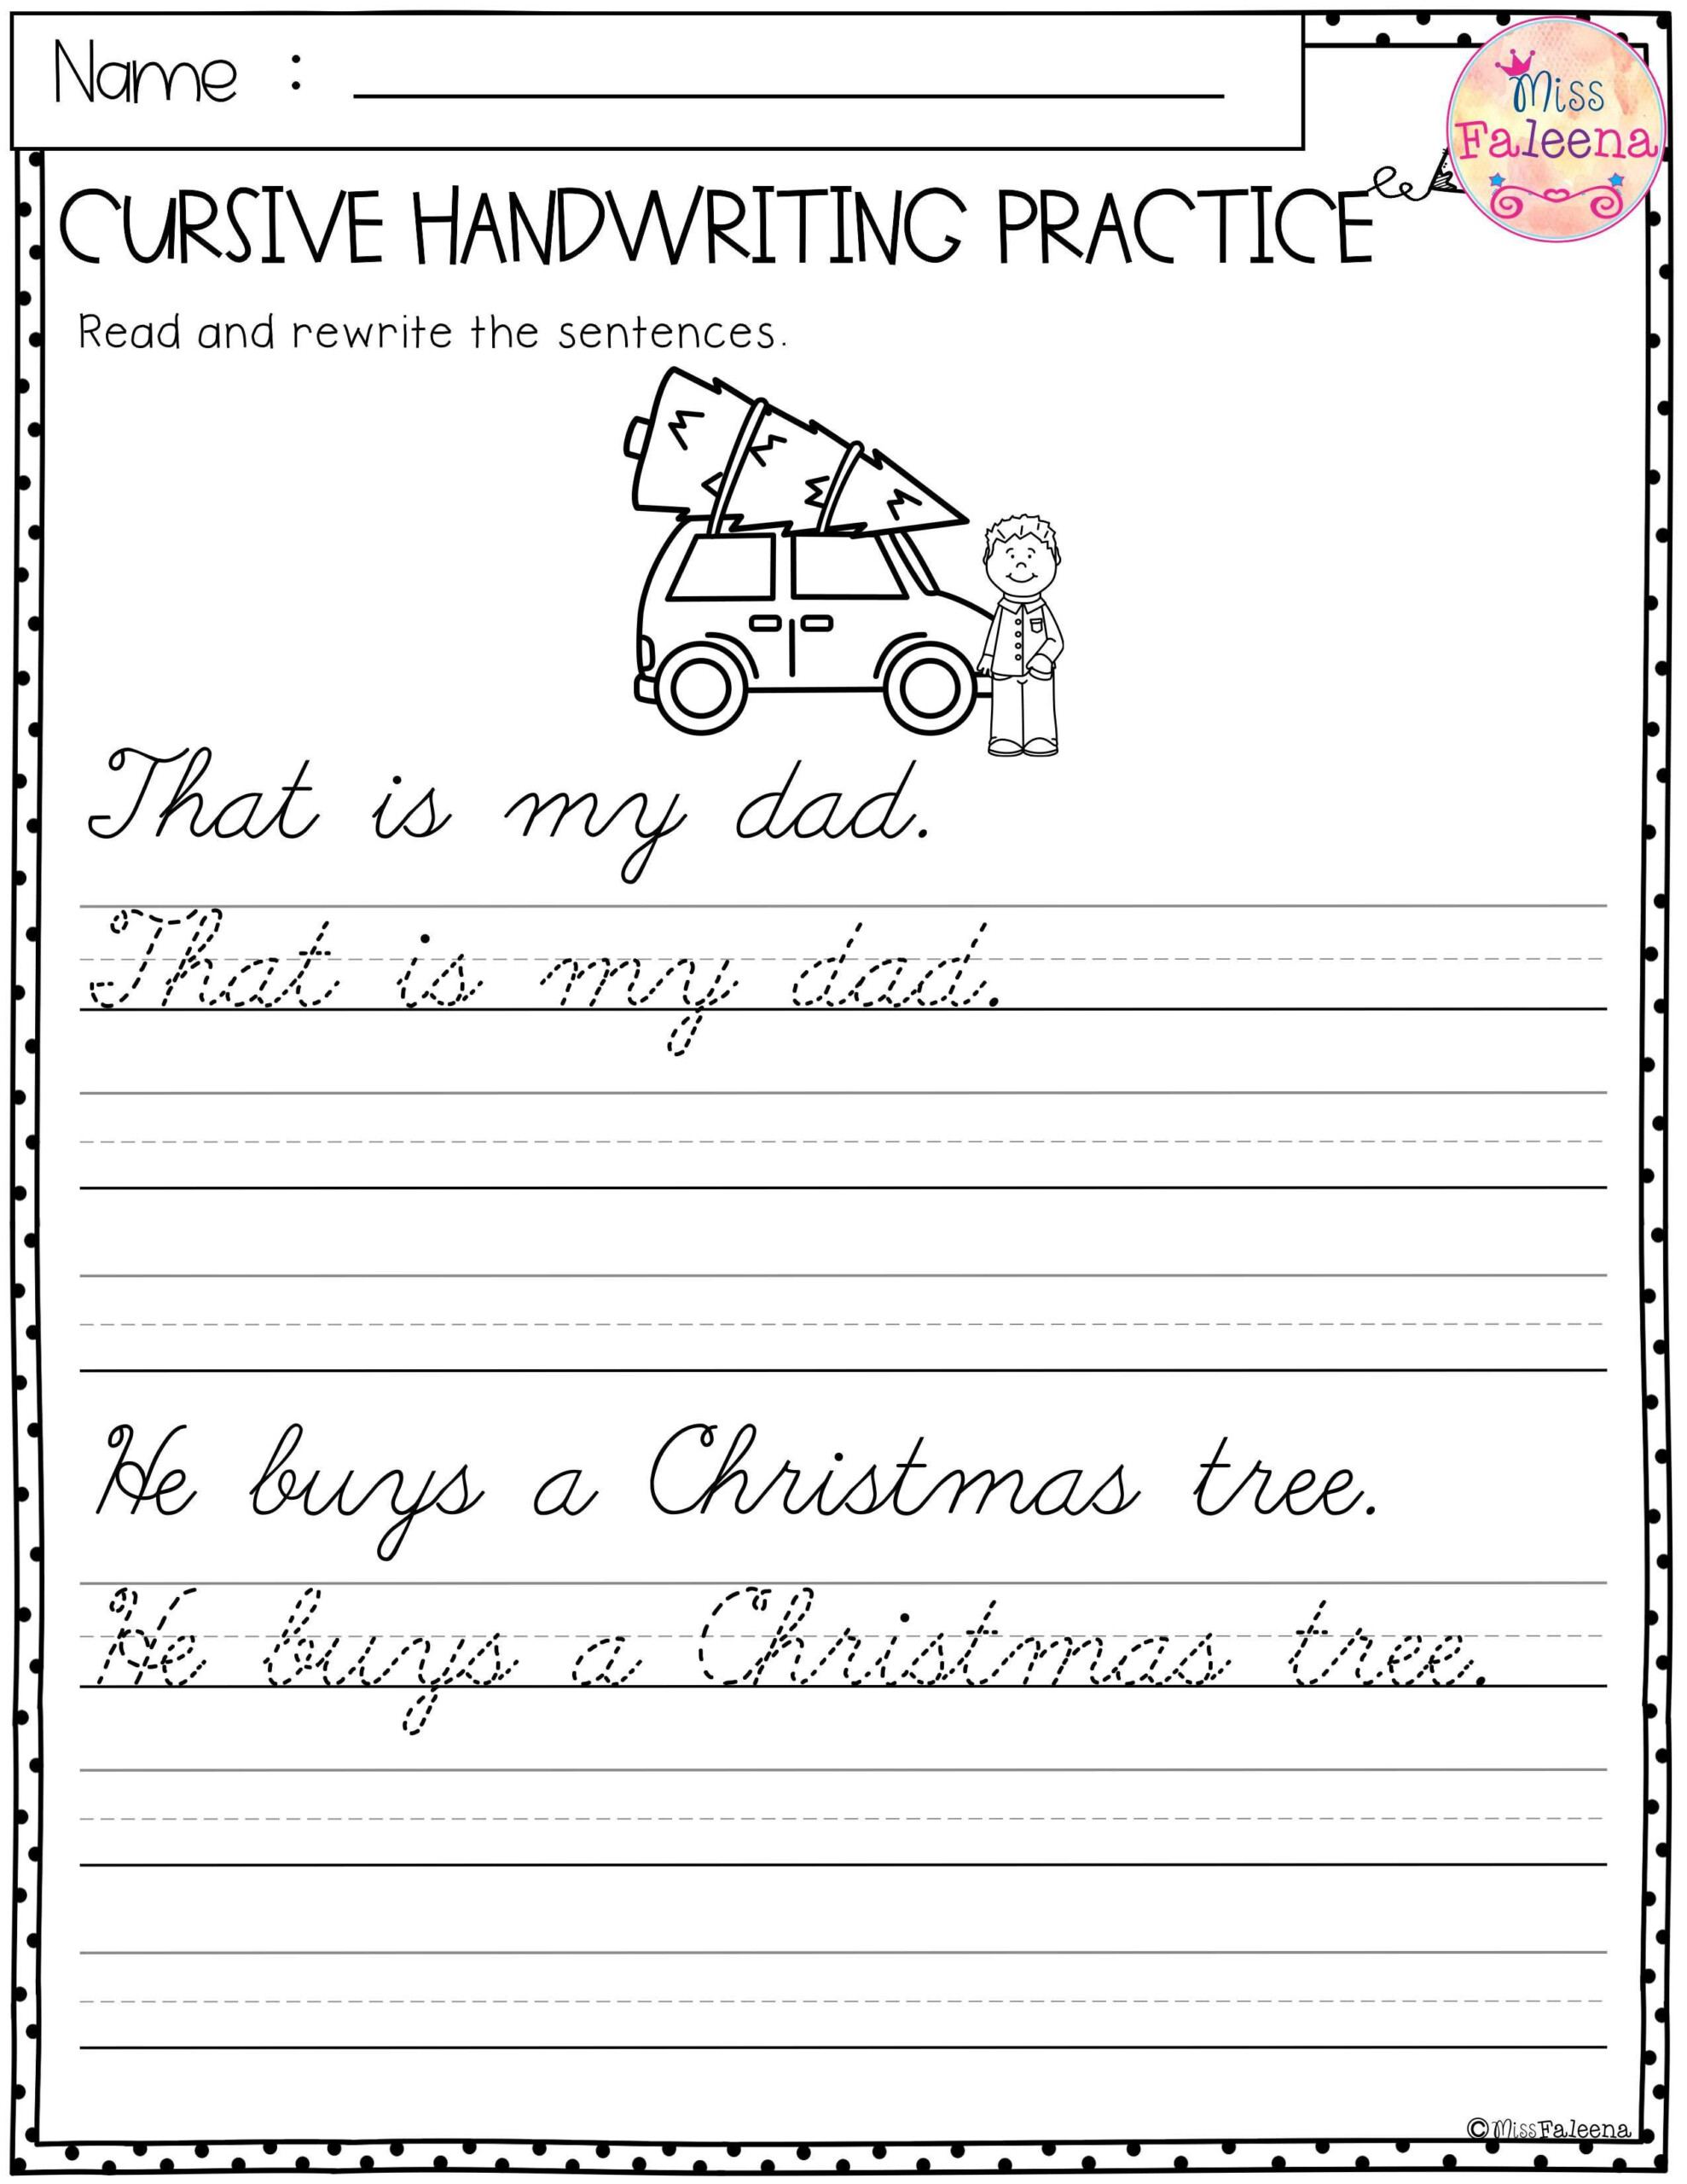 Christmas Cursive Handwriting Practice Has 25 Pages Of